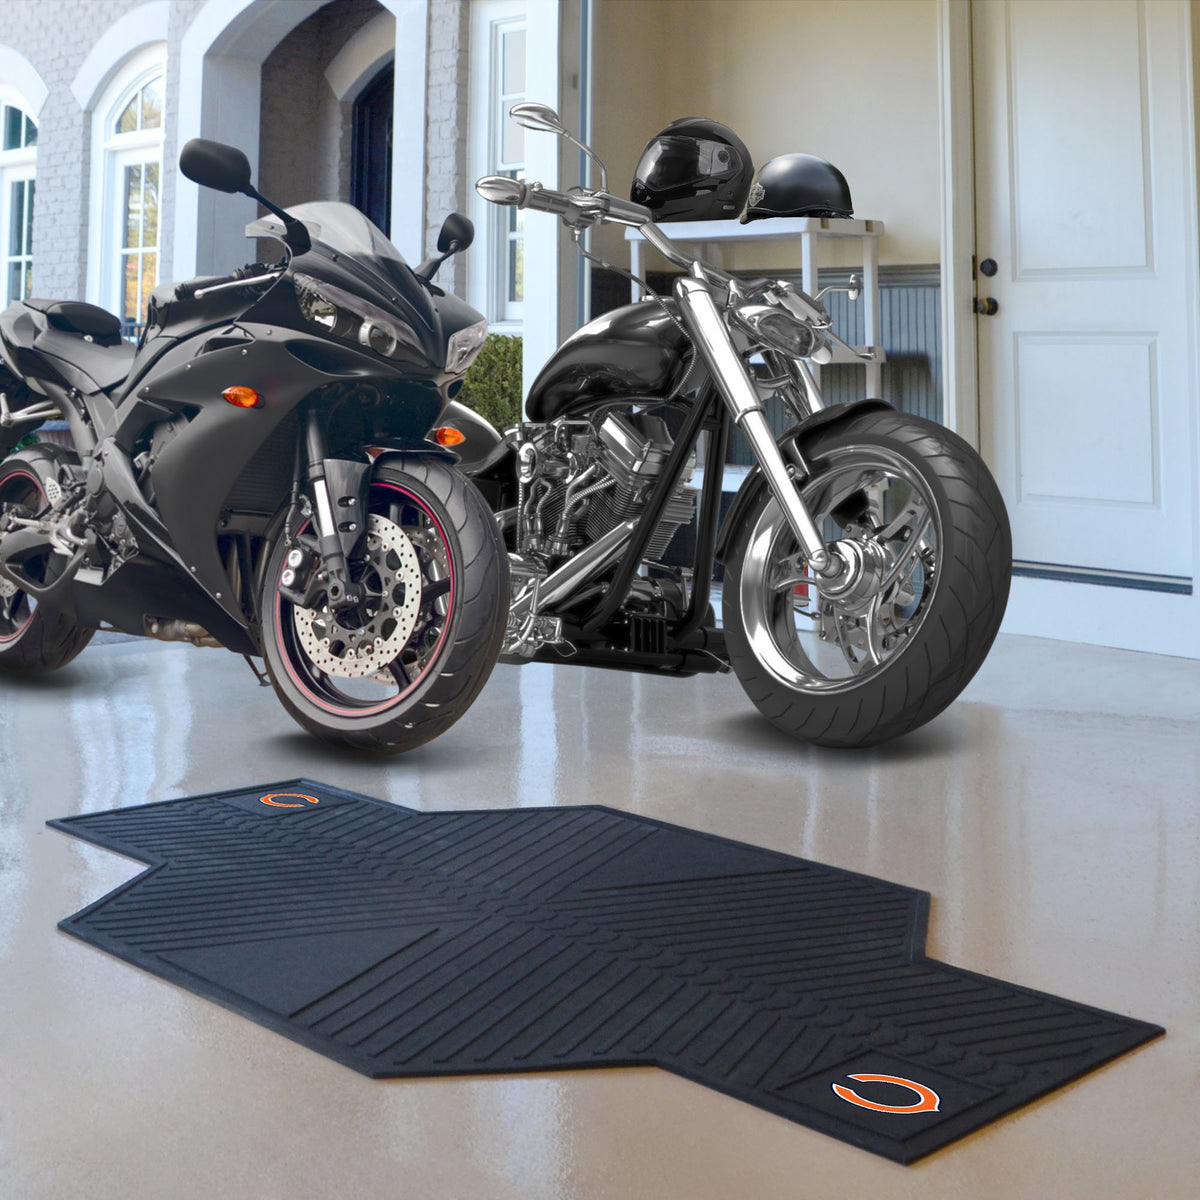 "NFL - Motorcycle Mat, 82.5"" x 42"" NFL Mats, Motorcycle Accessory, Motorcycle Mat, NFL, Auto Fan Mats Chicago Bears"